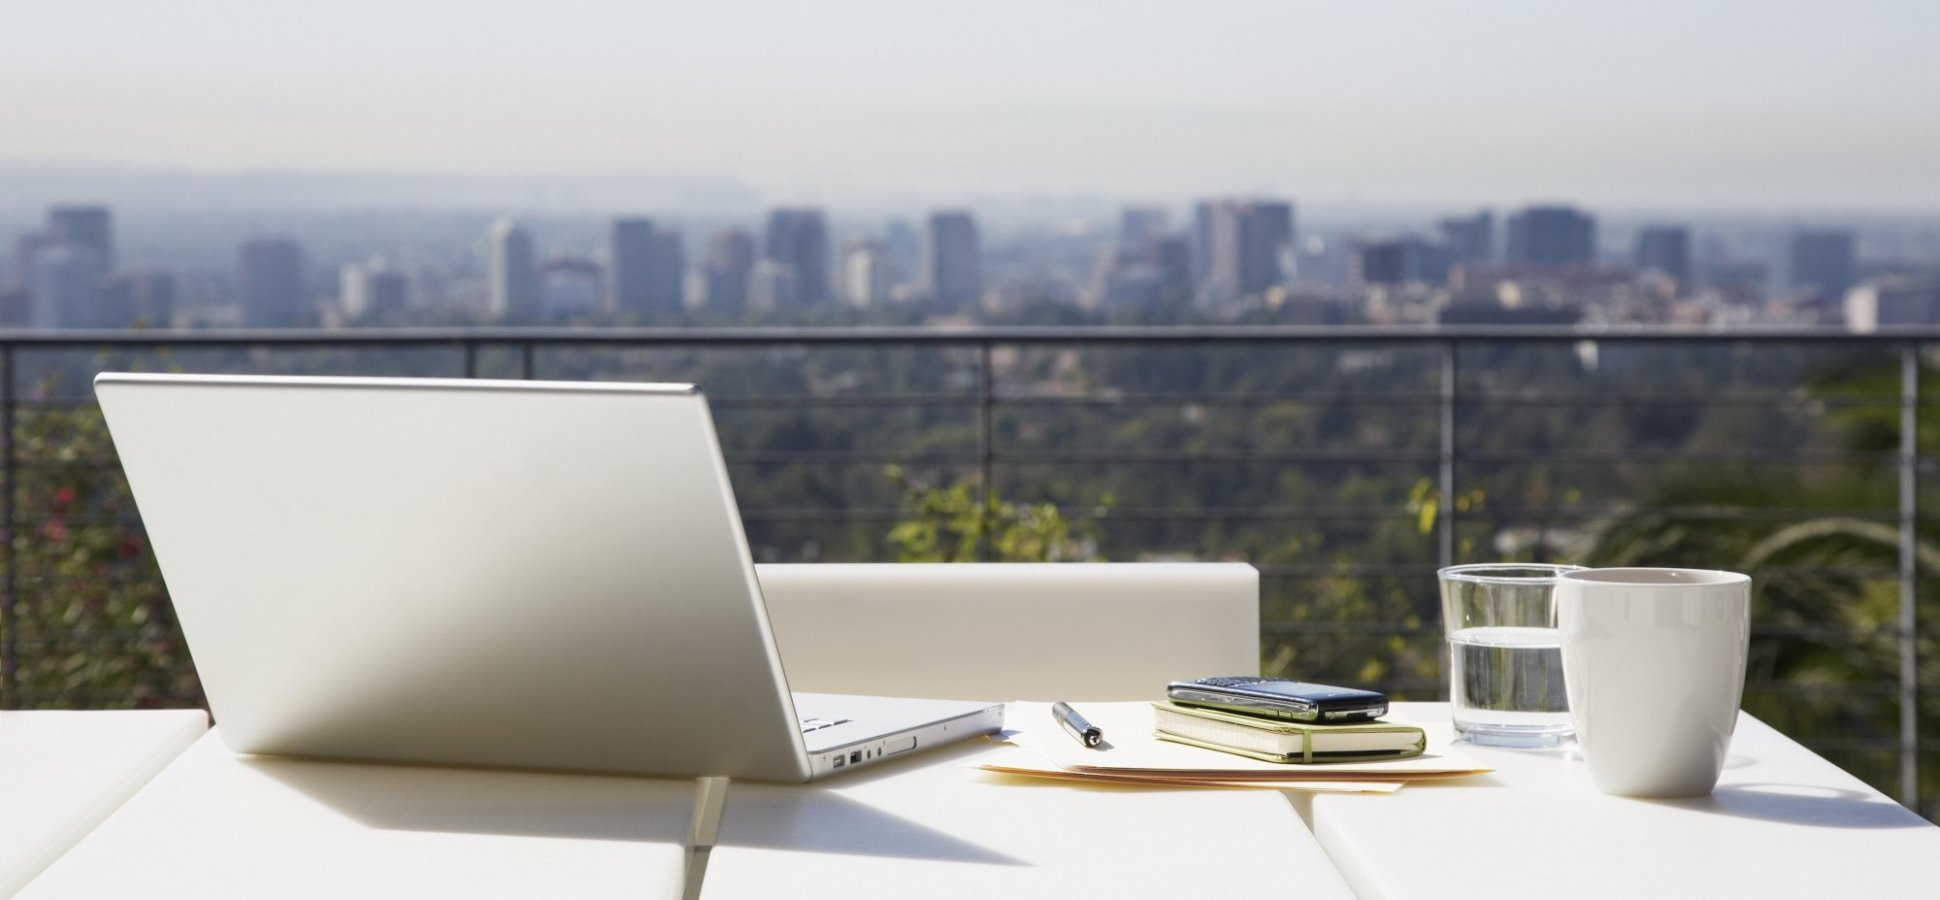 Case Closed: Work-From-Home Is the World's Smartest Management Strategy